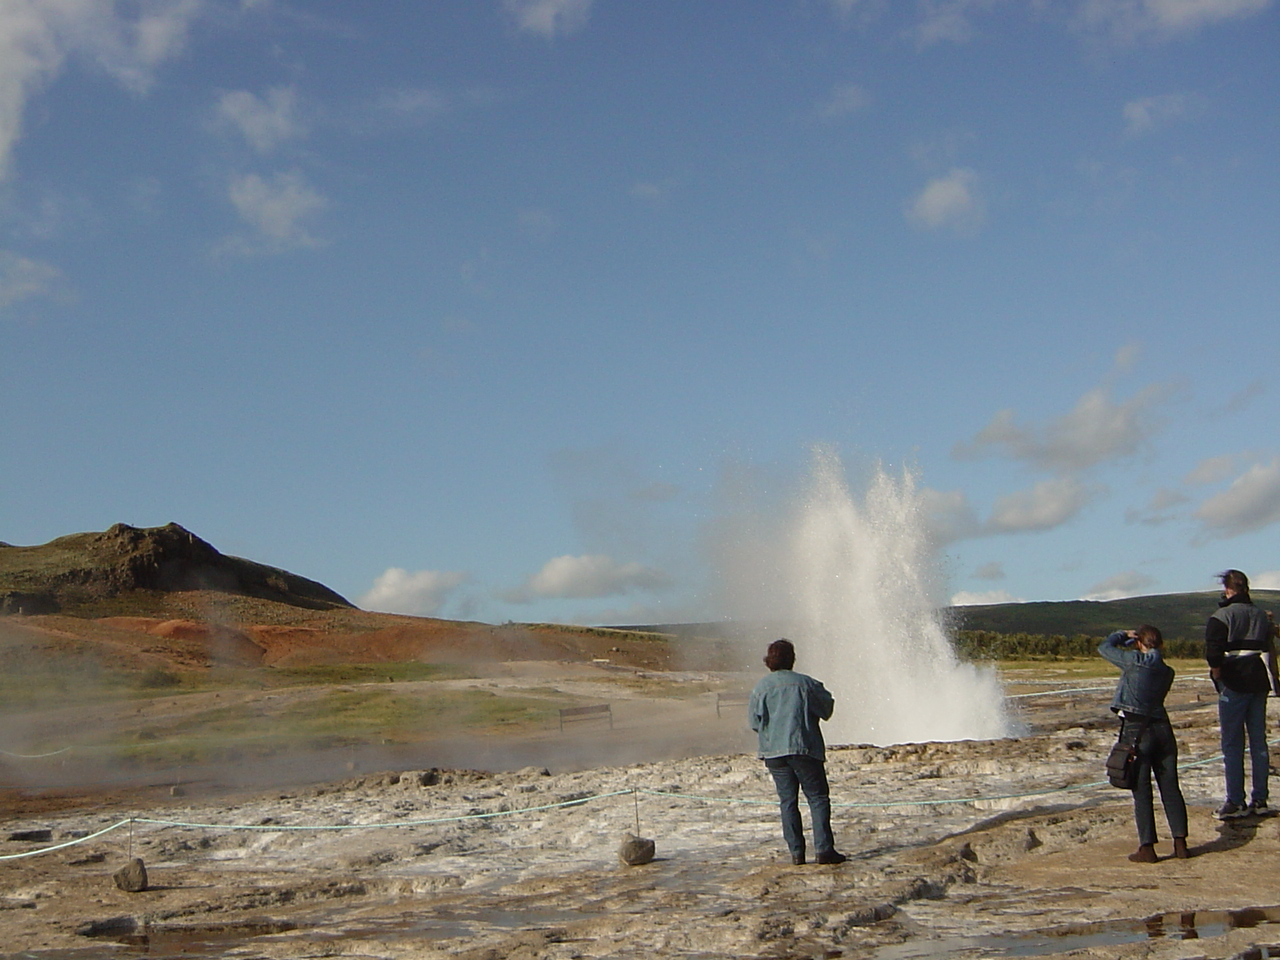 I am not sure how high the geysir spouts, but in the first picture you see the 'dieing down'f the first and highest spout.